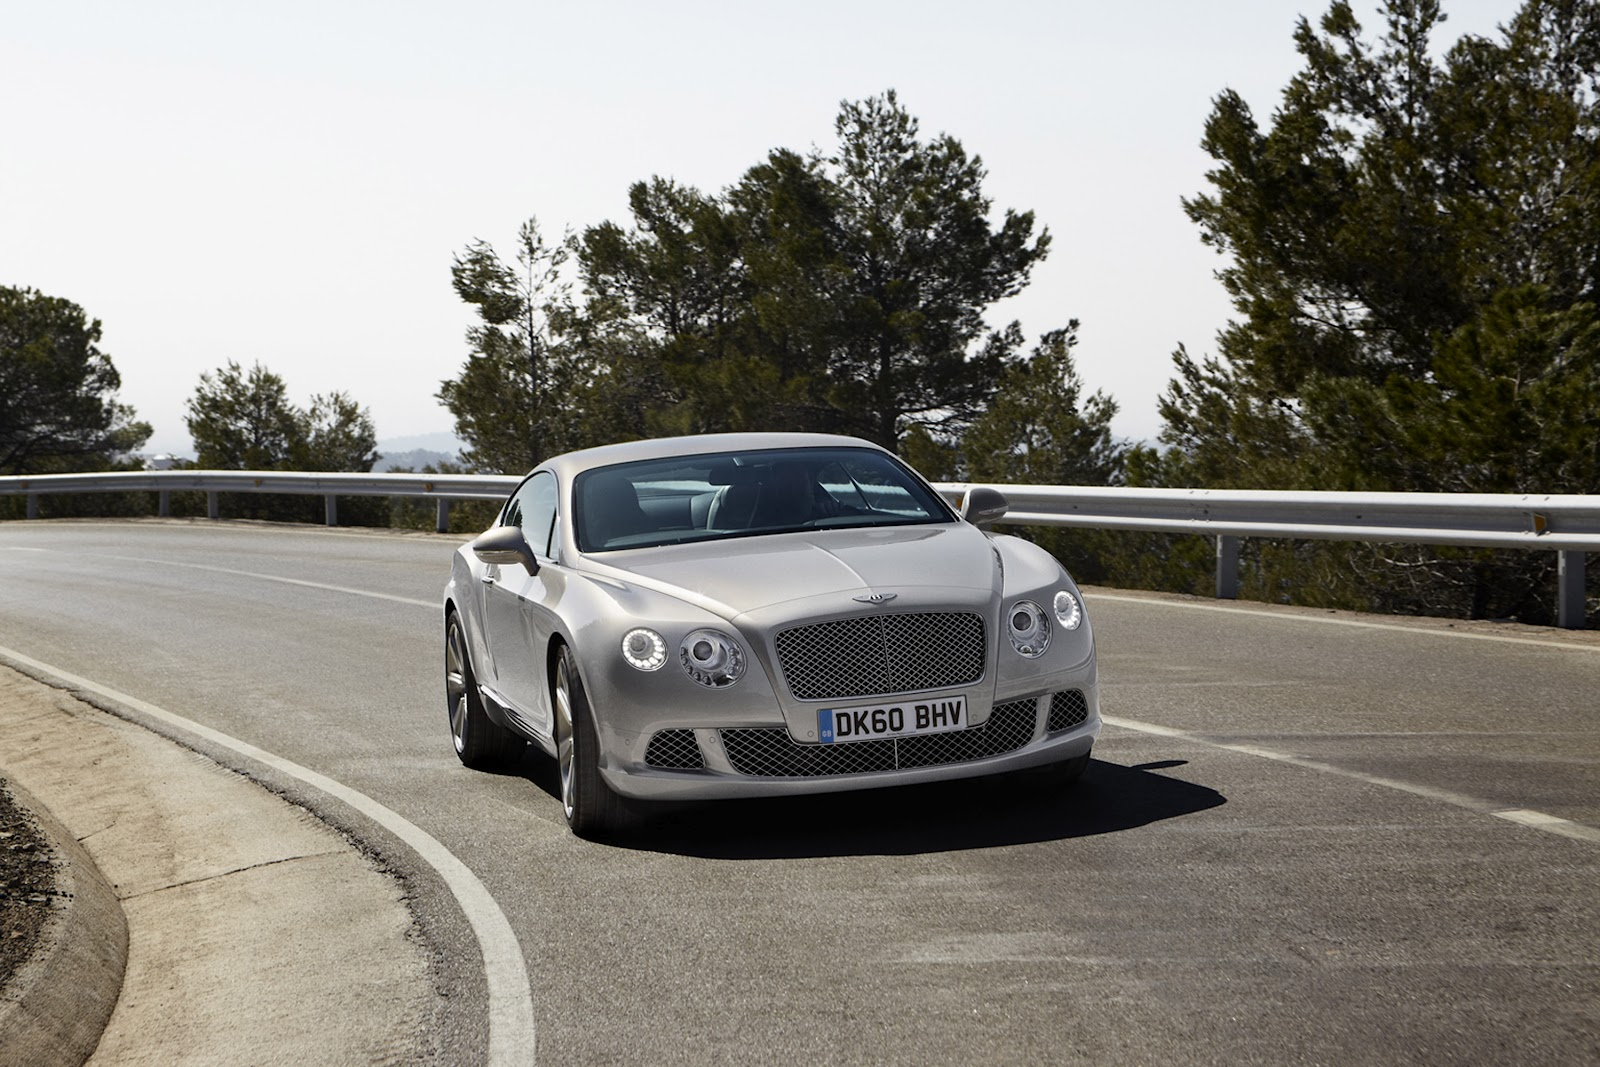 2013 Bentley Continental GTC Spy Shots